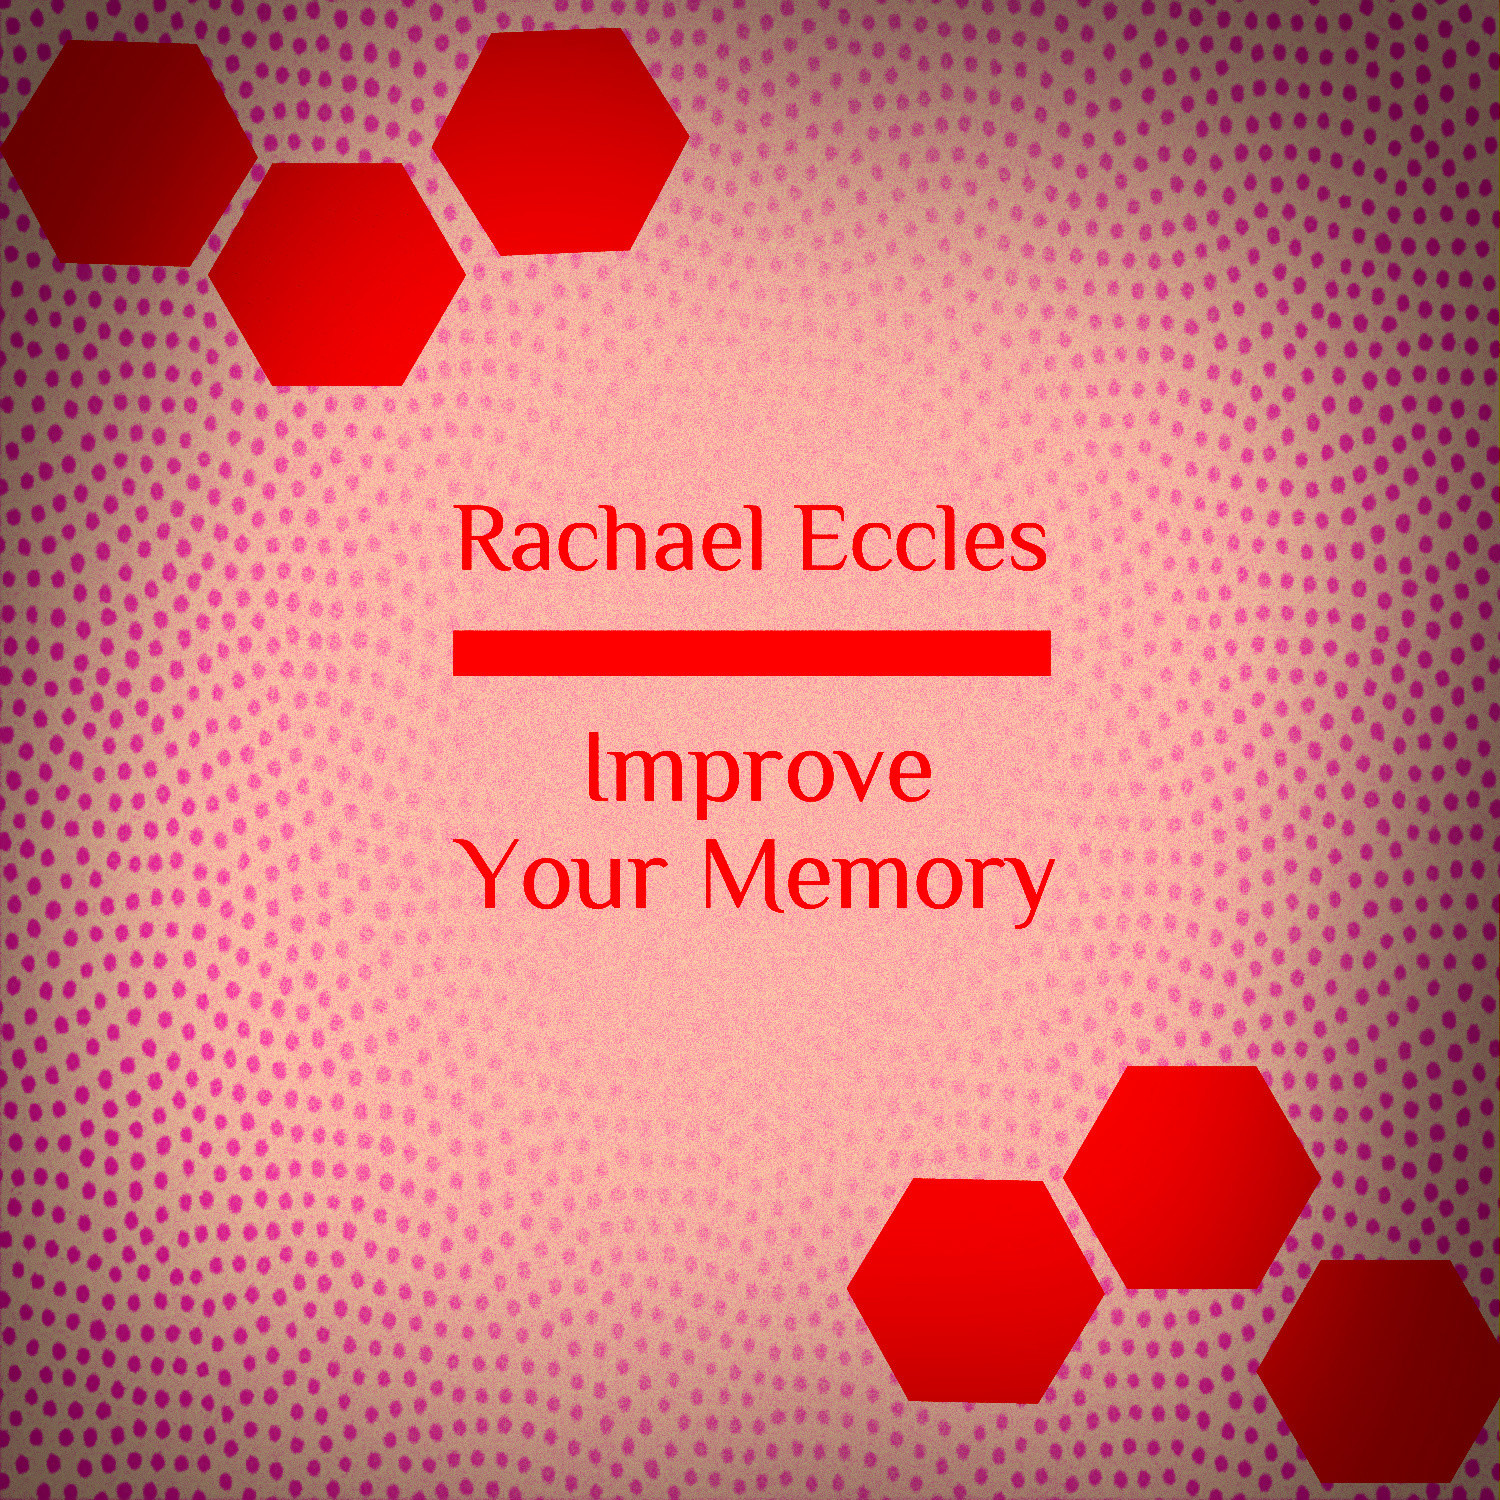 Improve Your Memory, Learning & Memory Improvement Aid Hypnotherapy, Hypnosis Download or CD